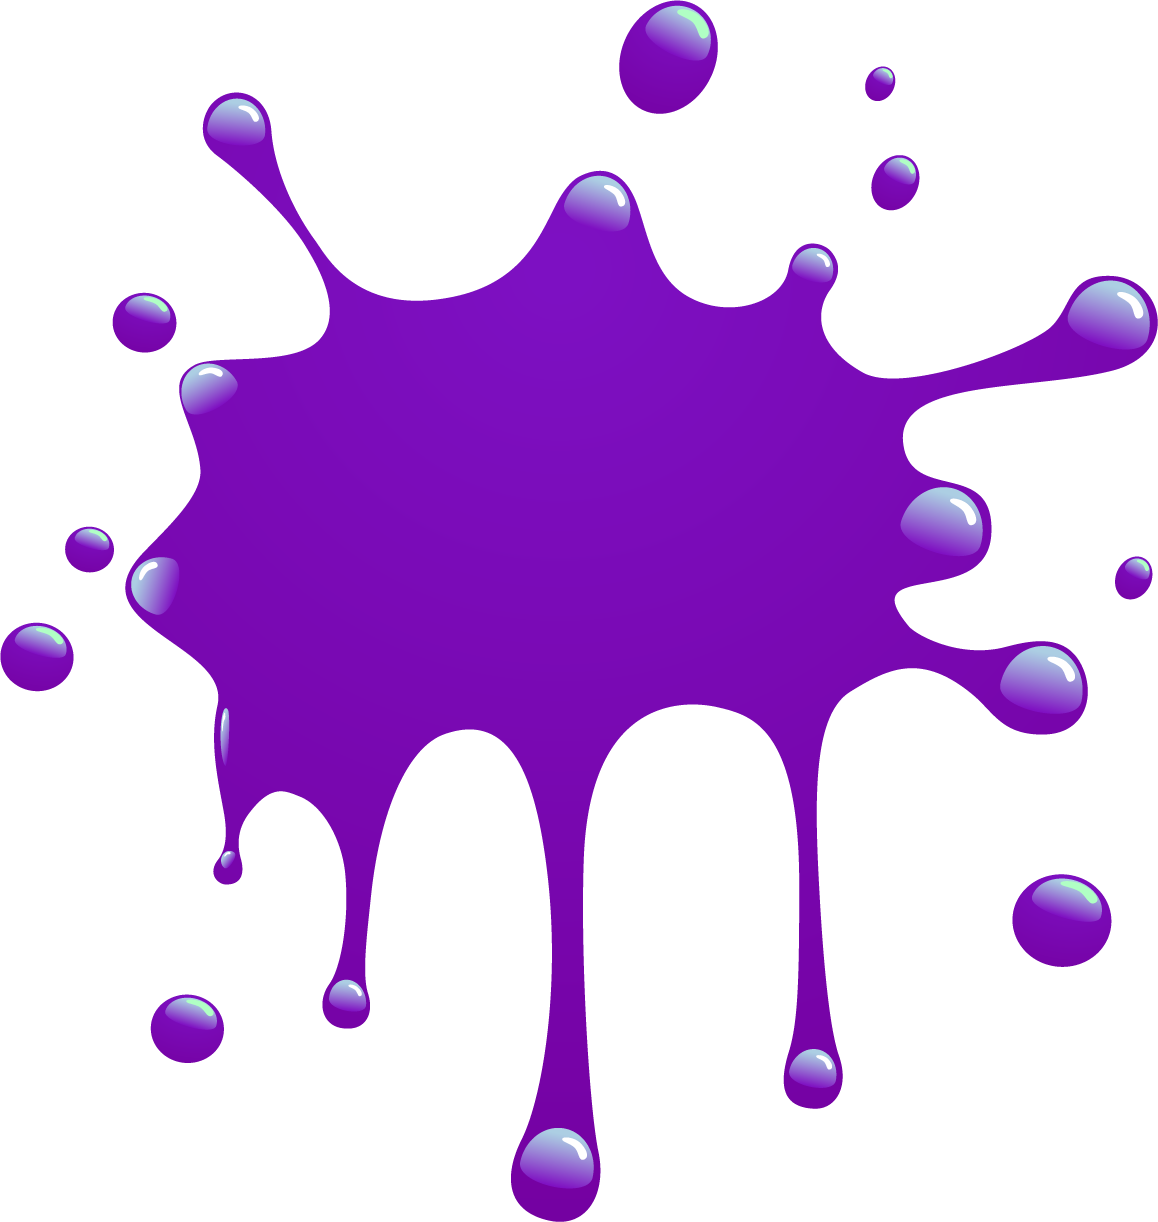 Free Paint Blob Png, Download Free Clip Art, Free Clip Art.